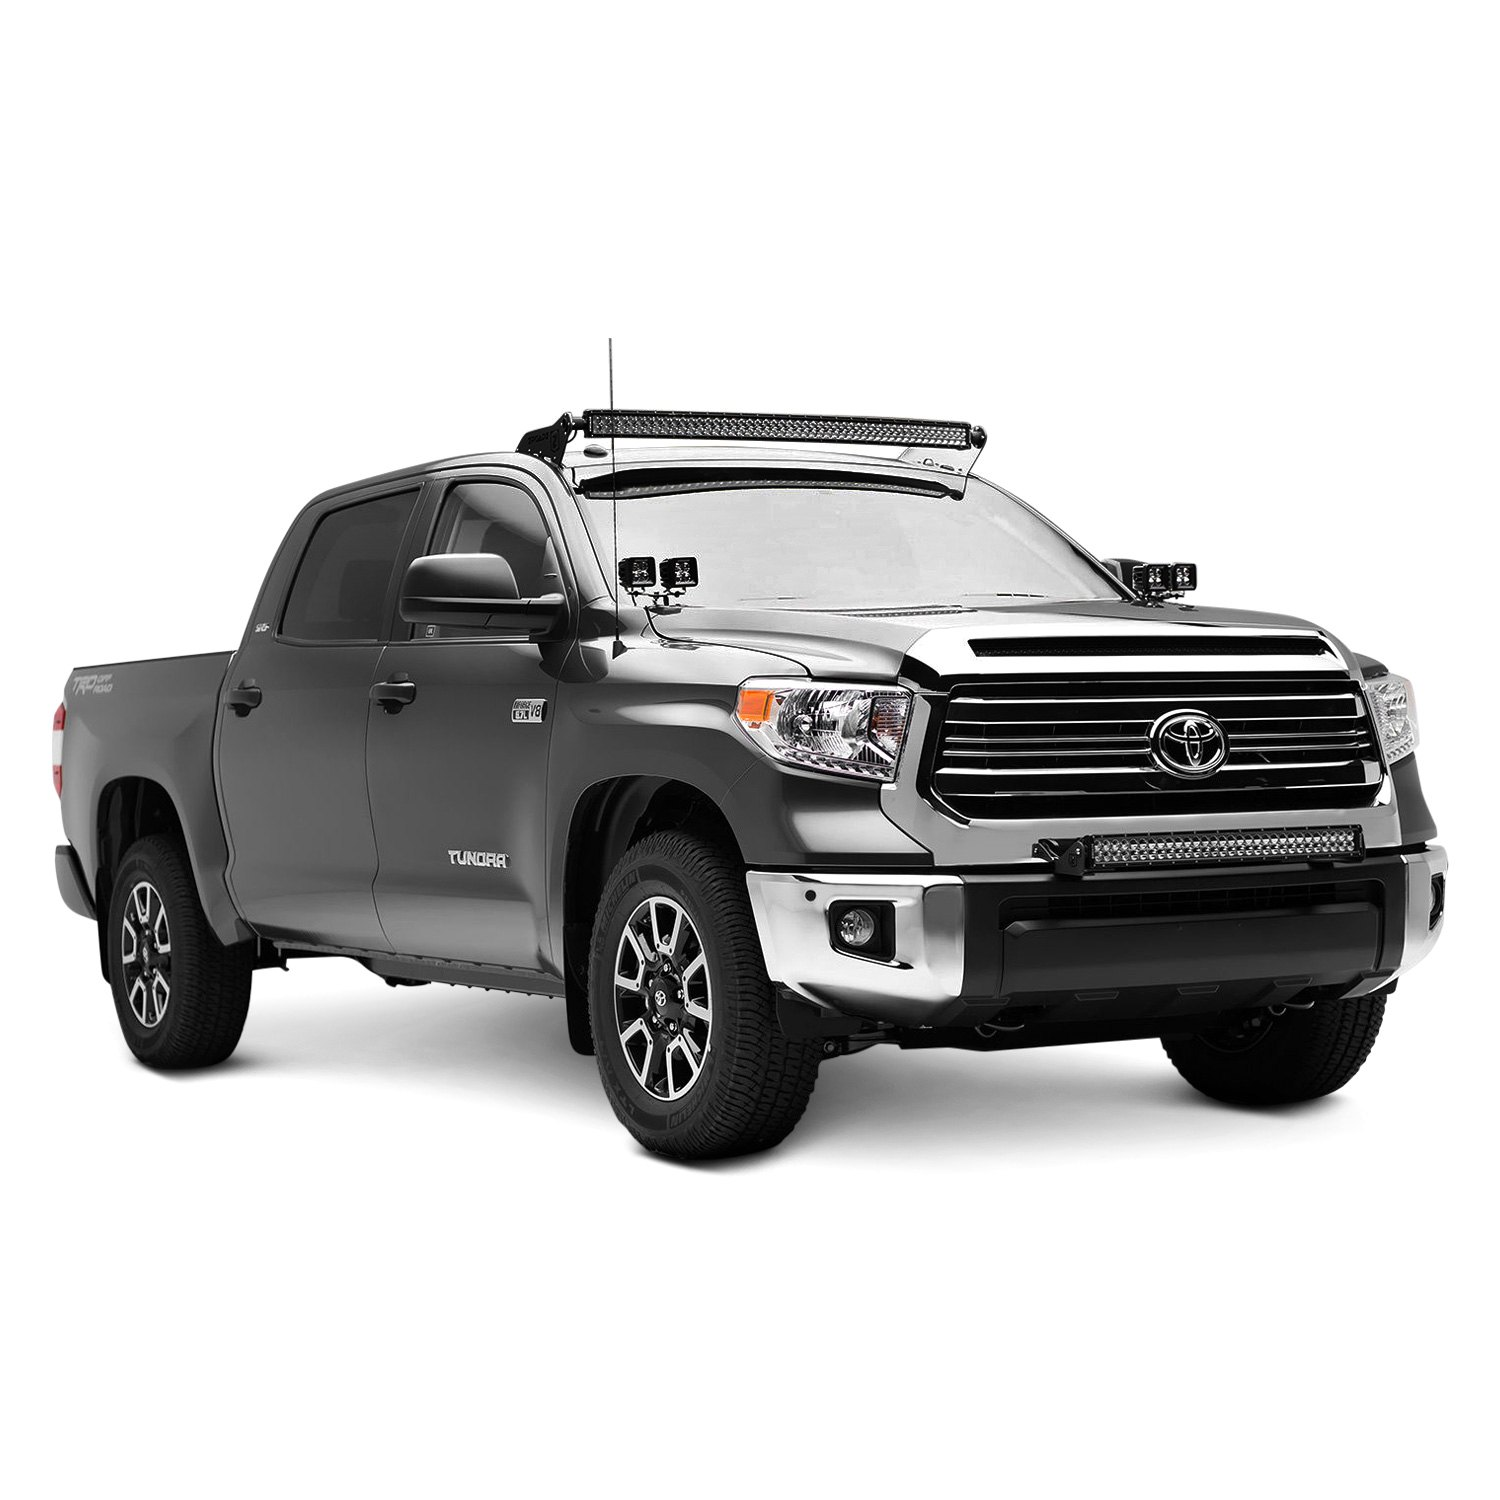 Product product id 557 also Scion Tc Faq moreover Bestop Trekstep Tailgate Step likewise 20 S Series Single Row Led Light Bar further Ford Ranger Overland Front Bumper Rocky Plus Series. on toyota tundra led